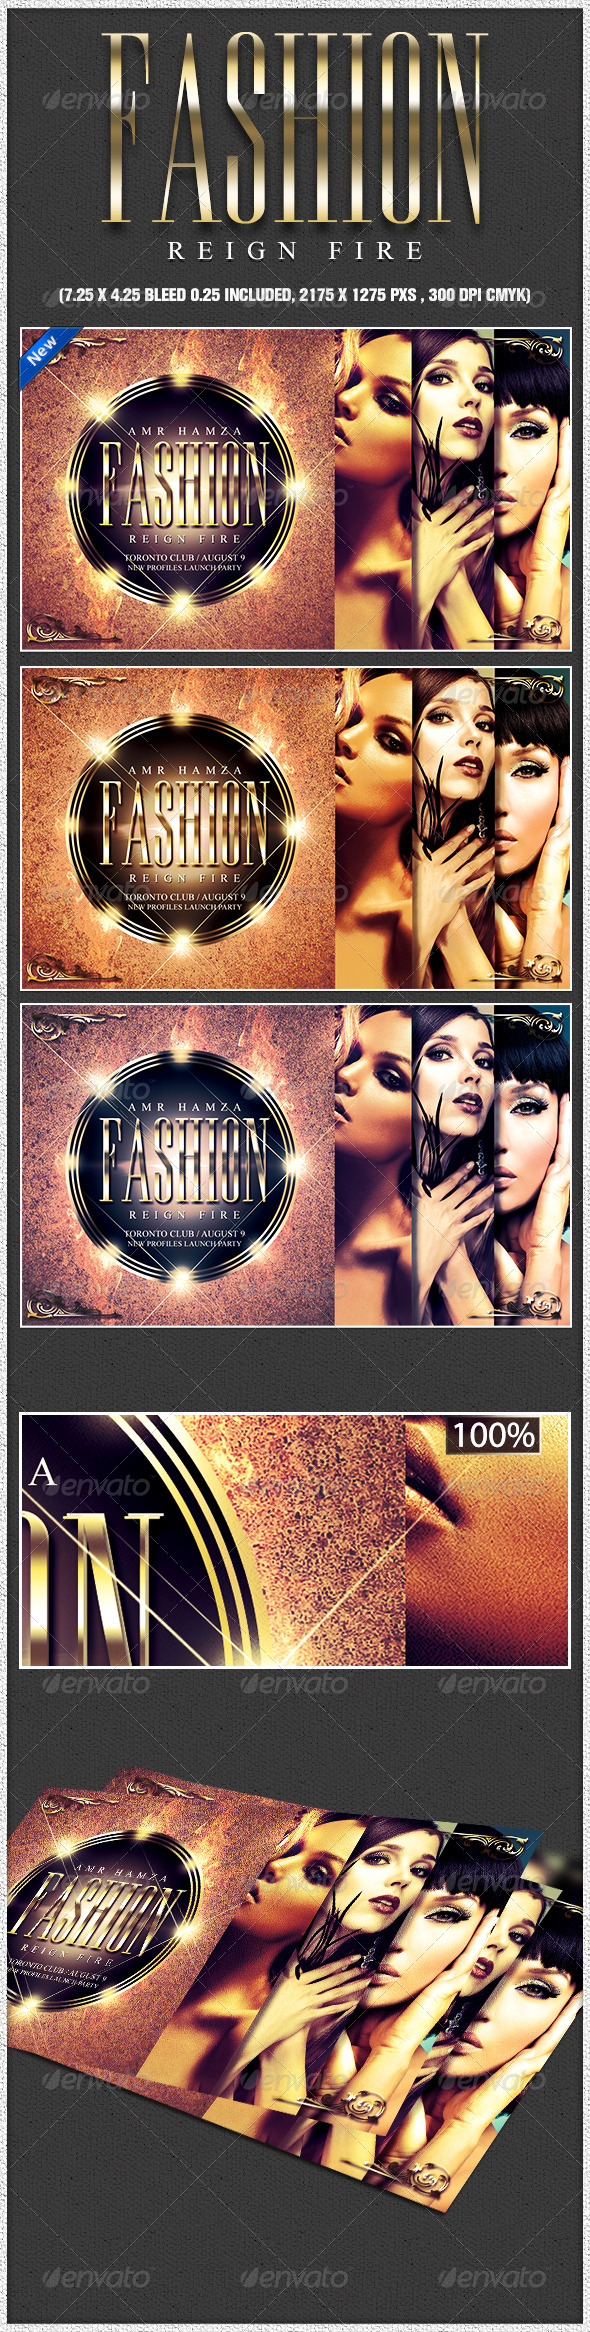 Fashion Profile Launch Party Flyer Template - Miscellaneous Events